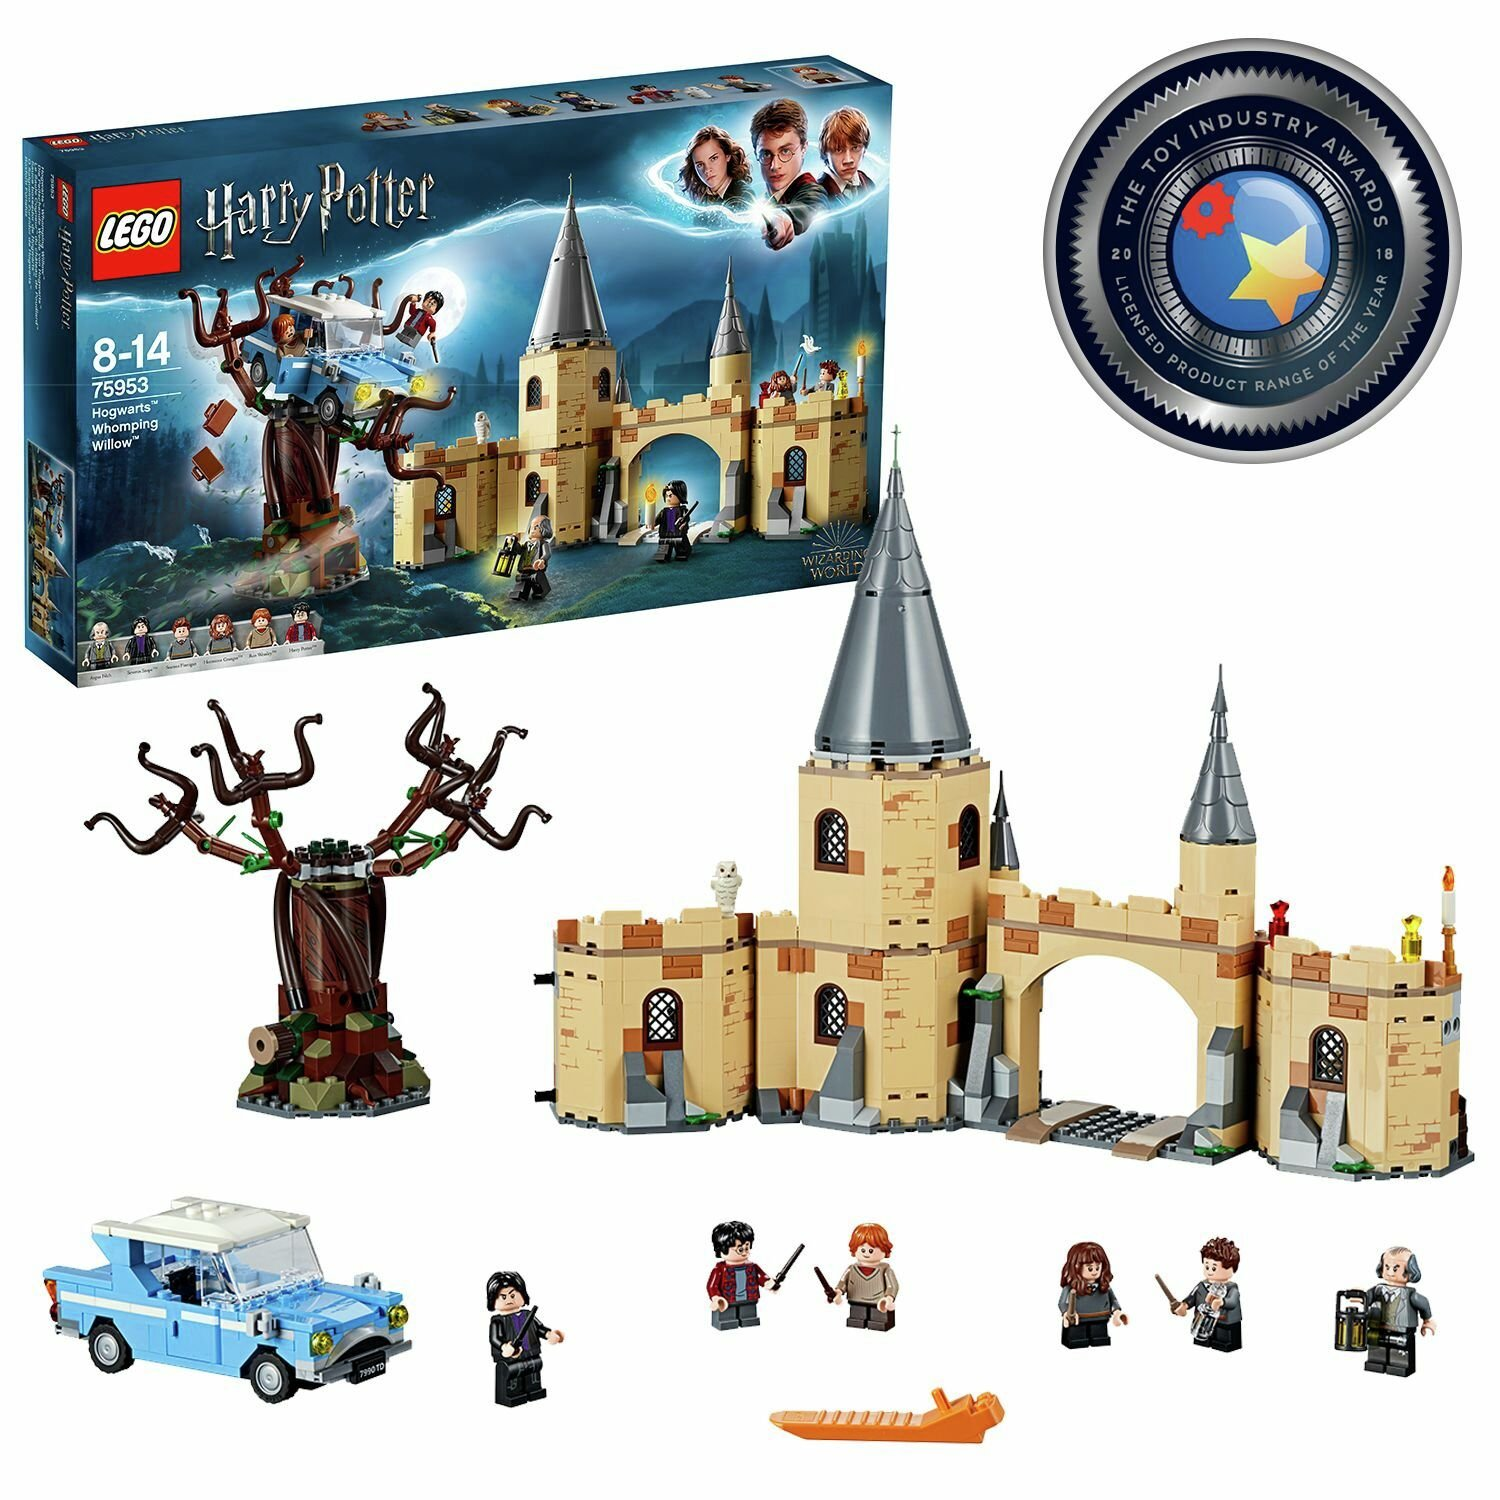 LEGO Harry Potter Hogwarts Whomping Willow Toy - 75953